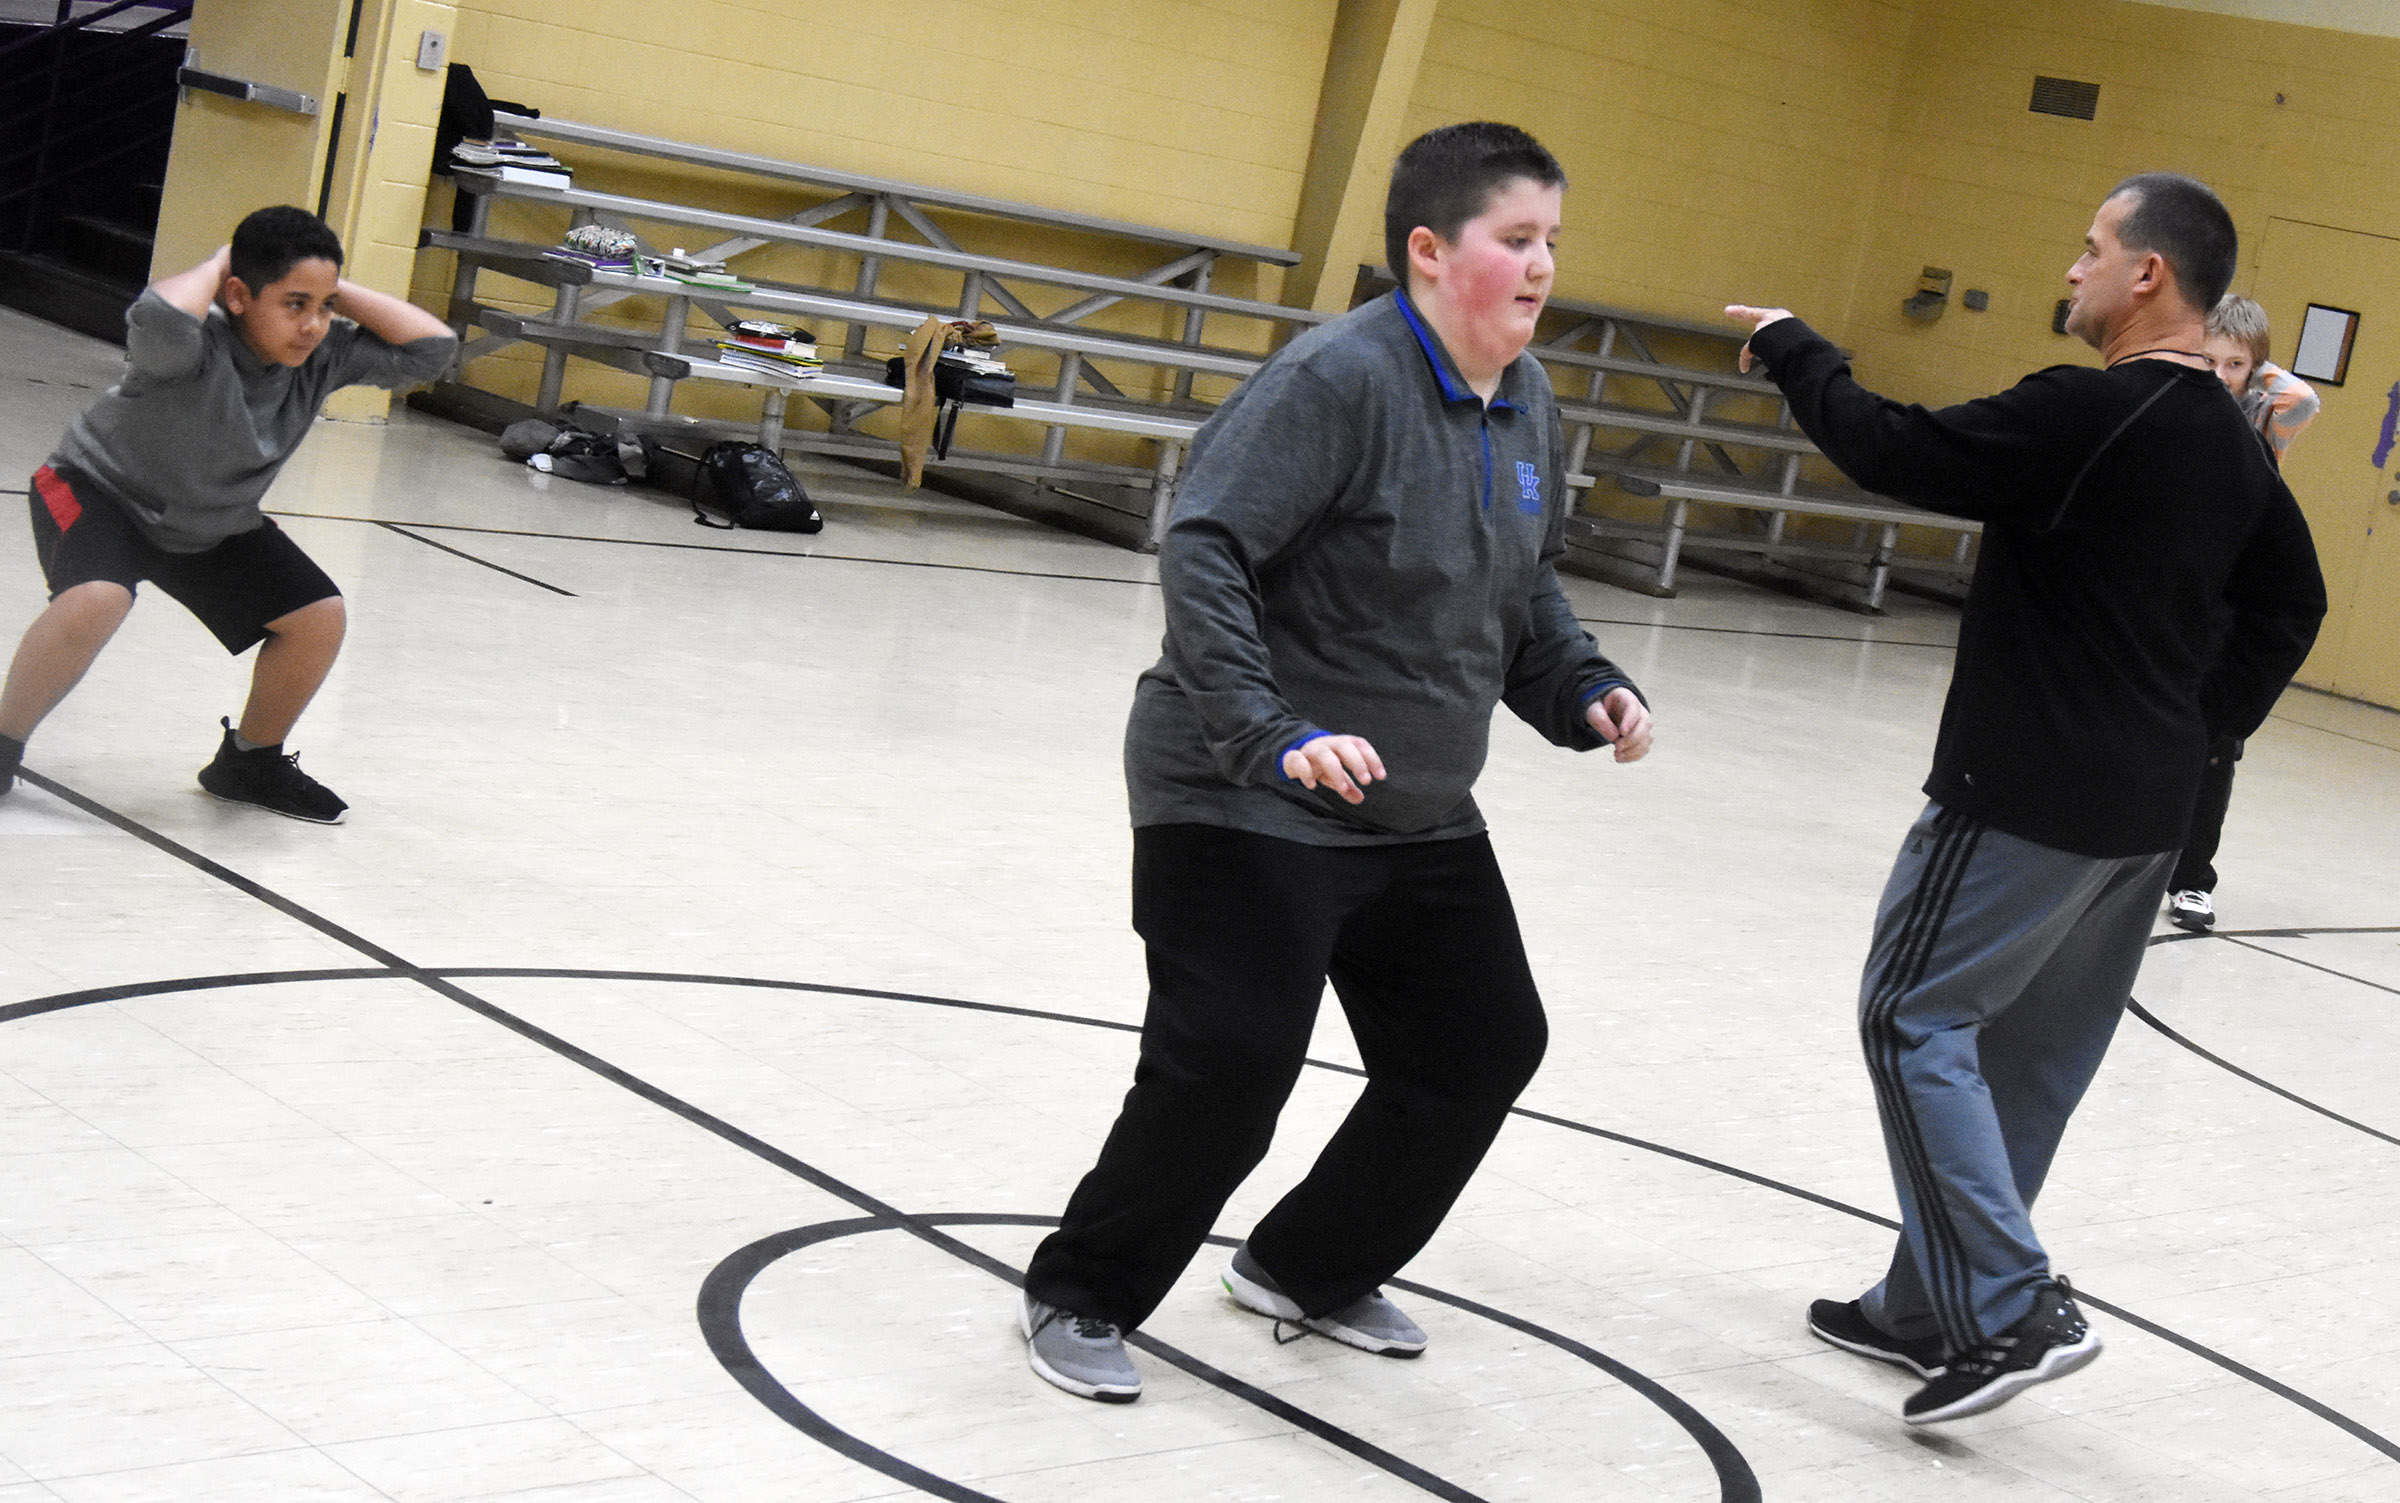 CMS substitute teacher Lynn Kearney leads students in a warmup exercise. From left are sixth-graders Diego Noyola and Luke McDonald.